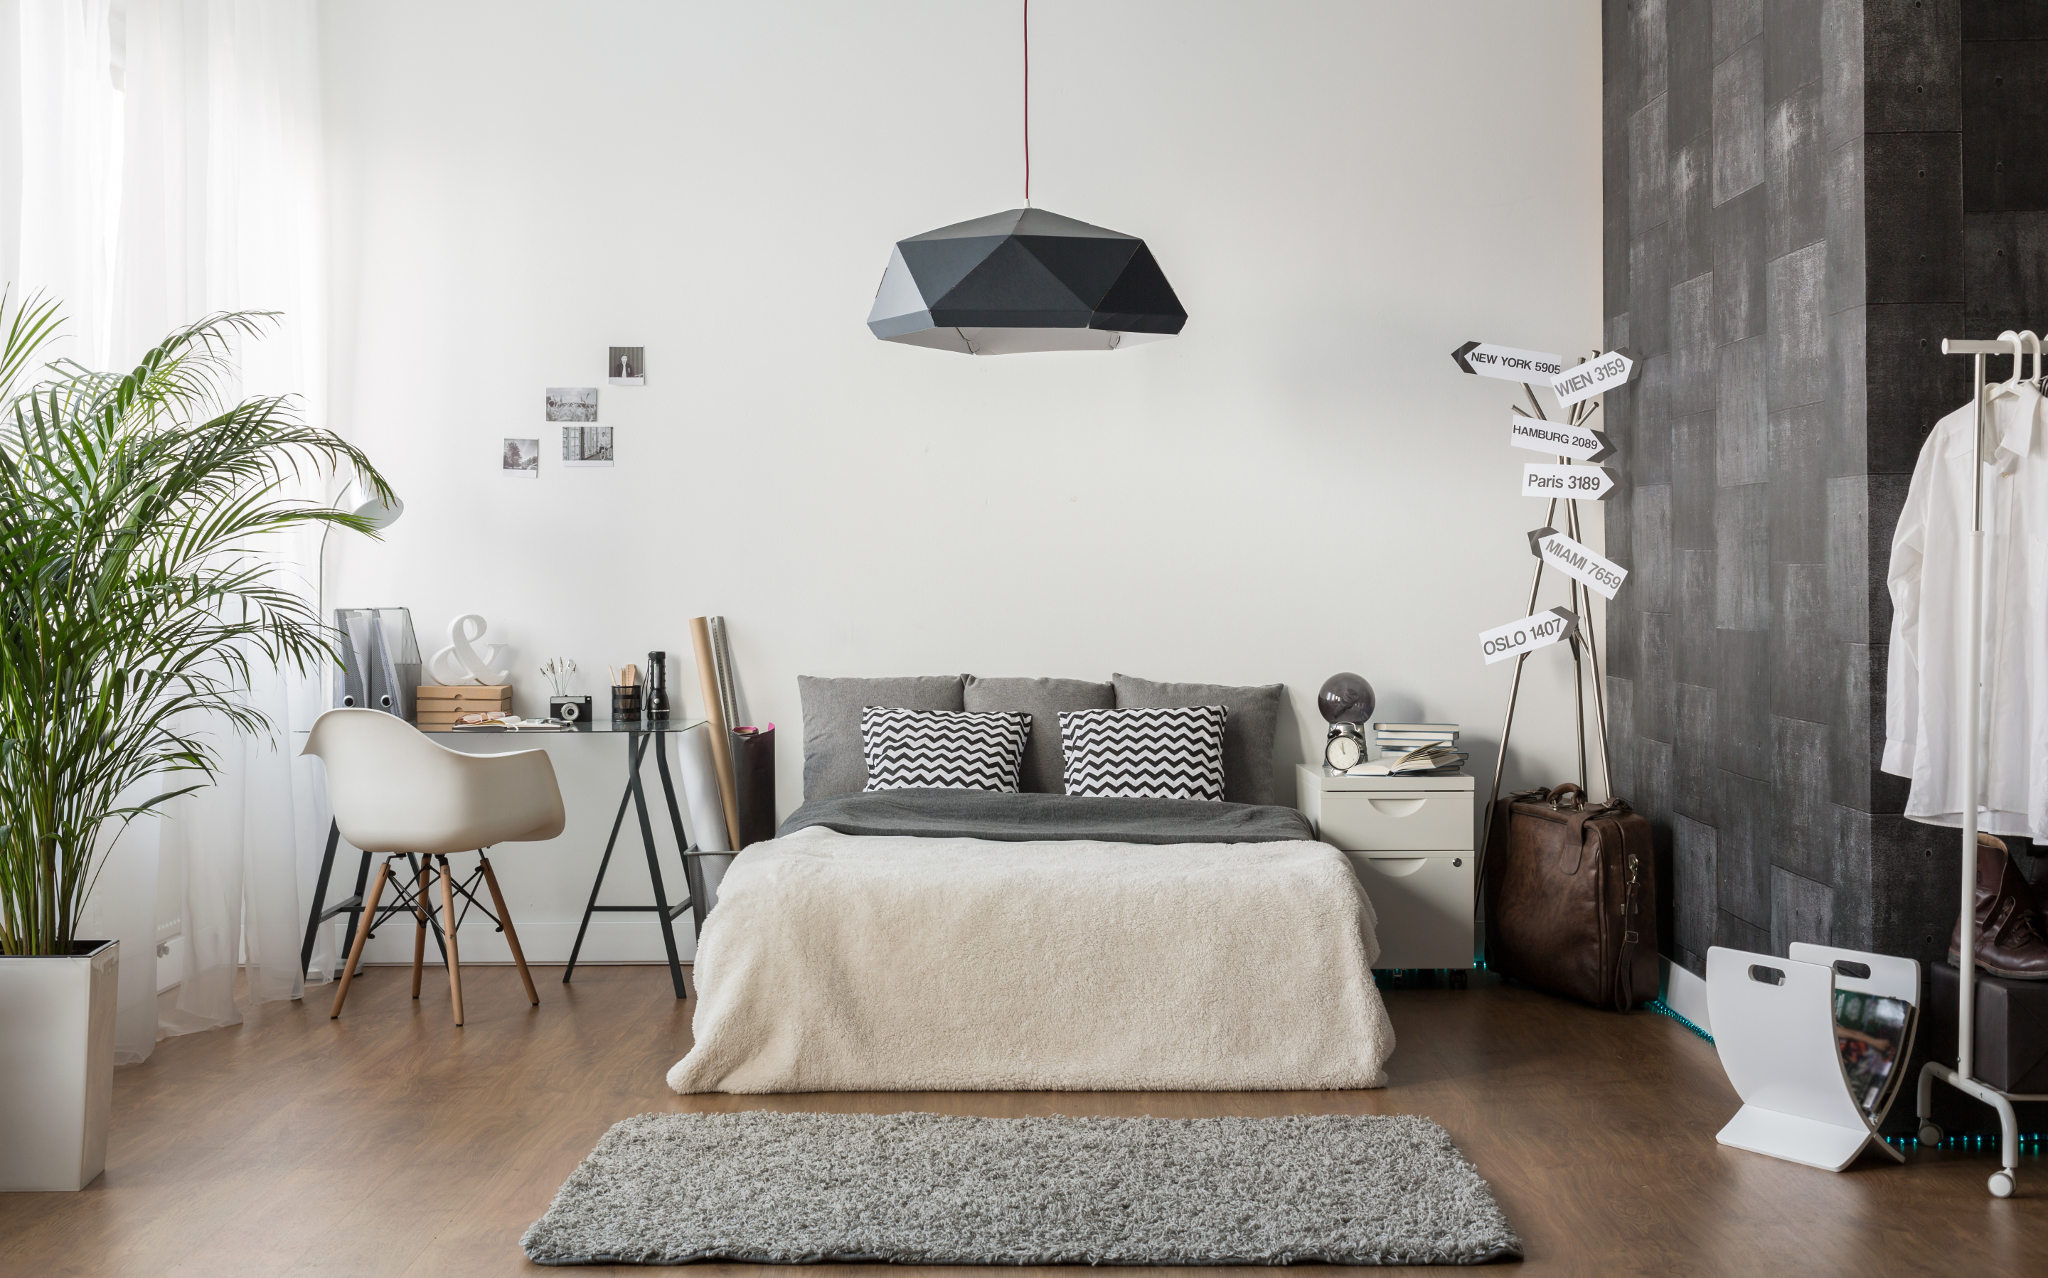 Bedroom, Living Room & Common Areas